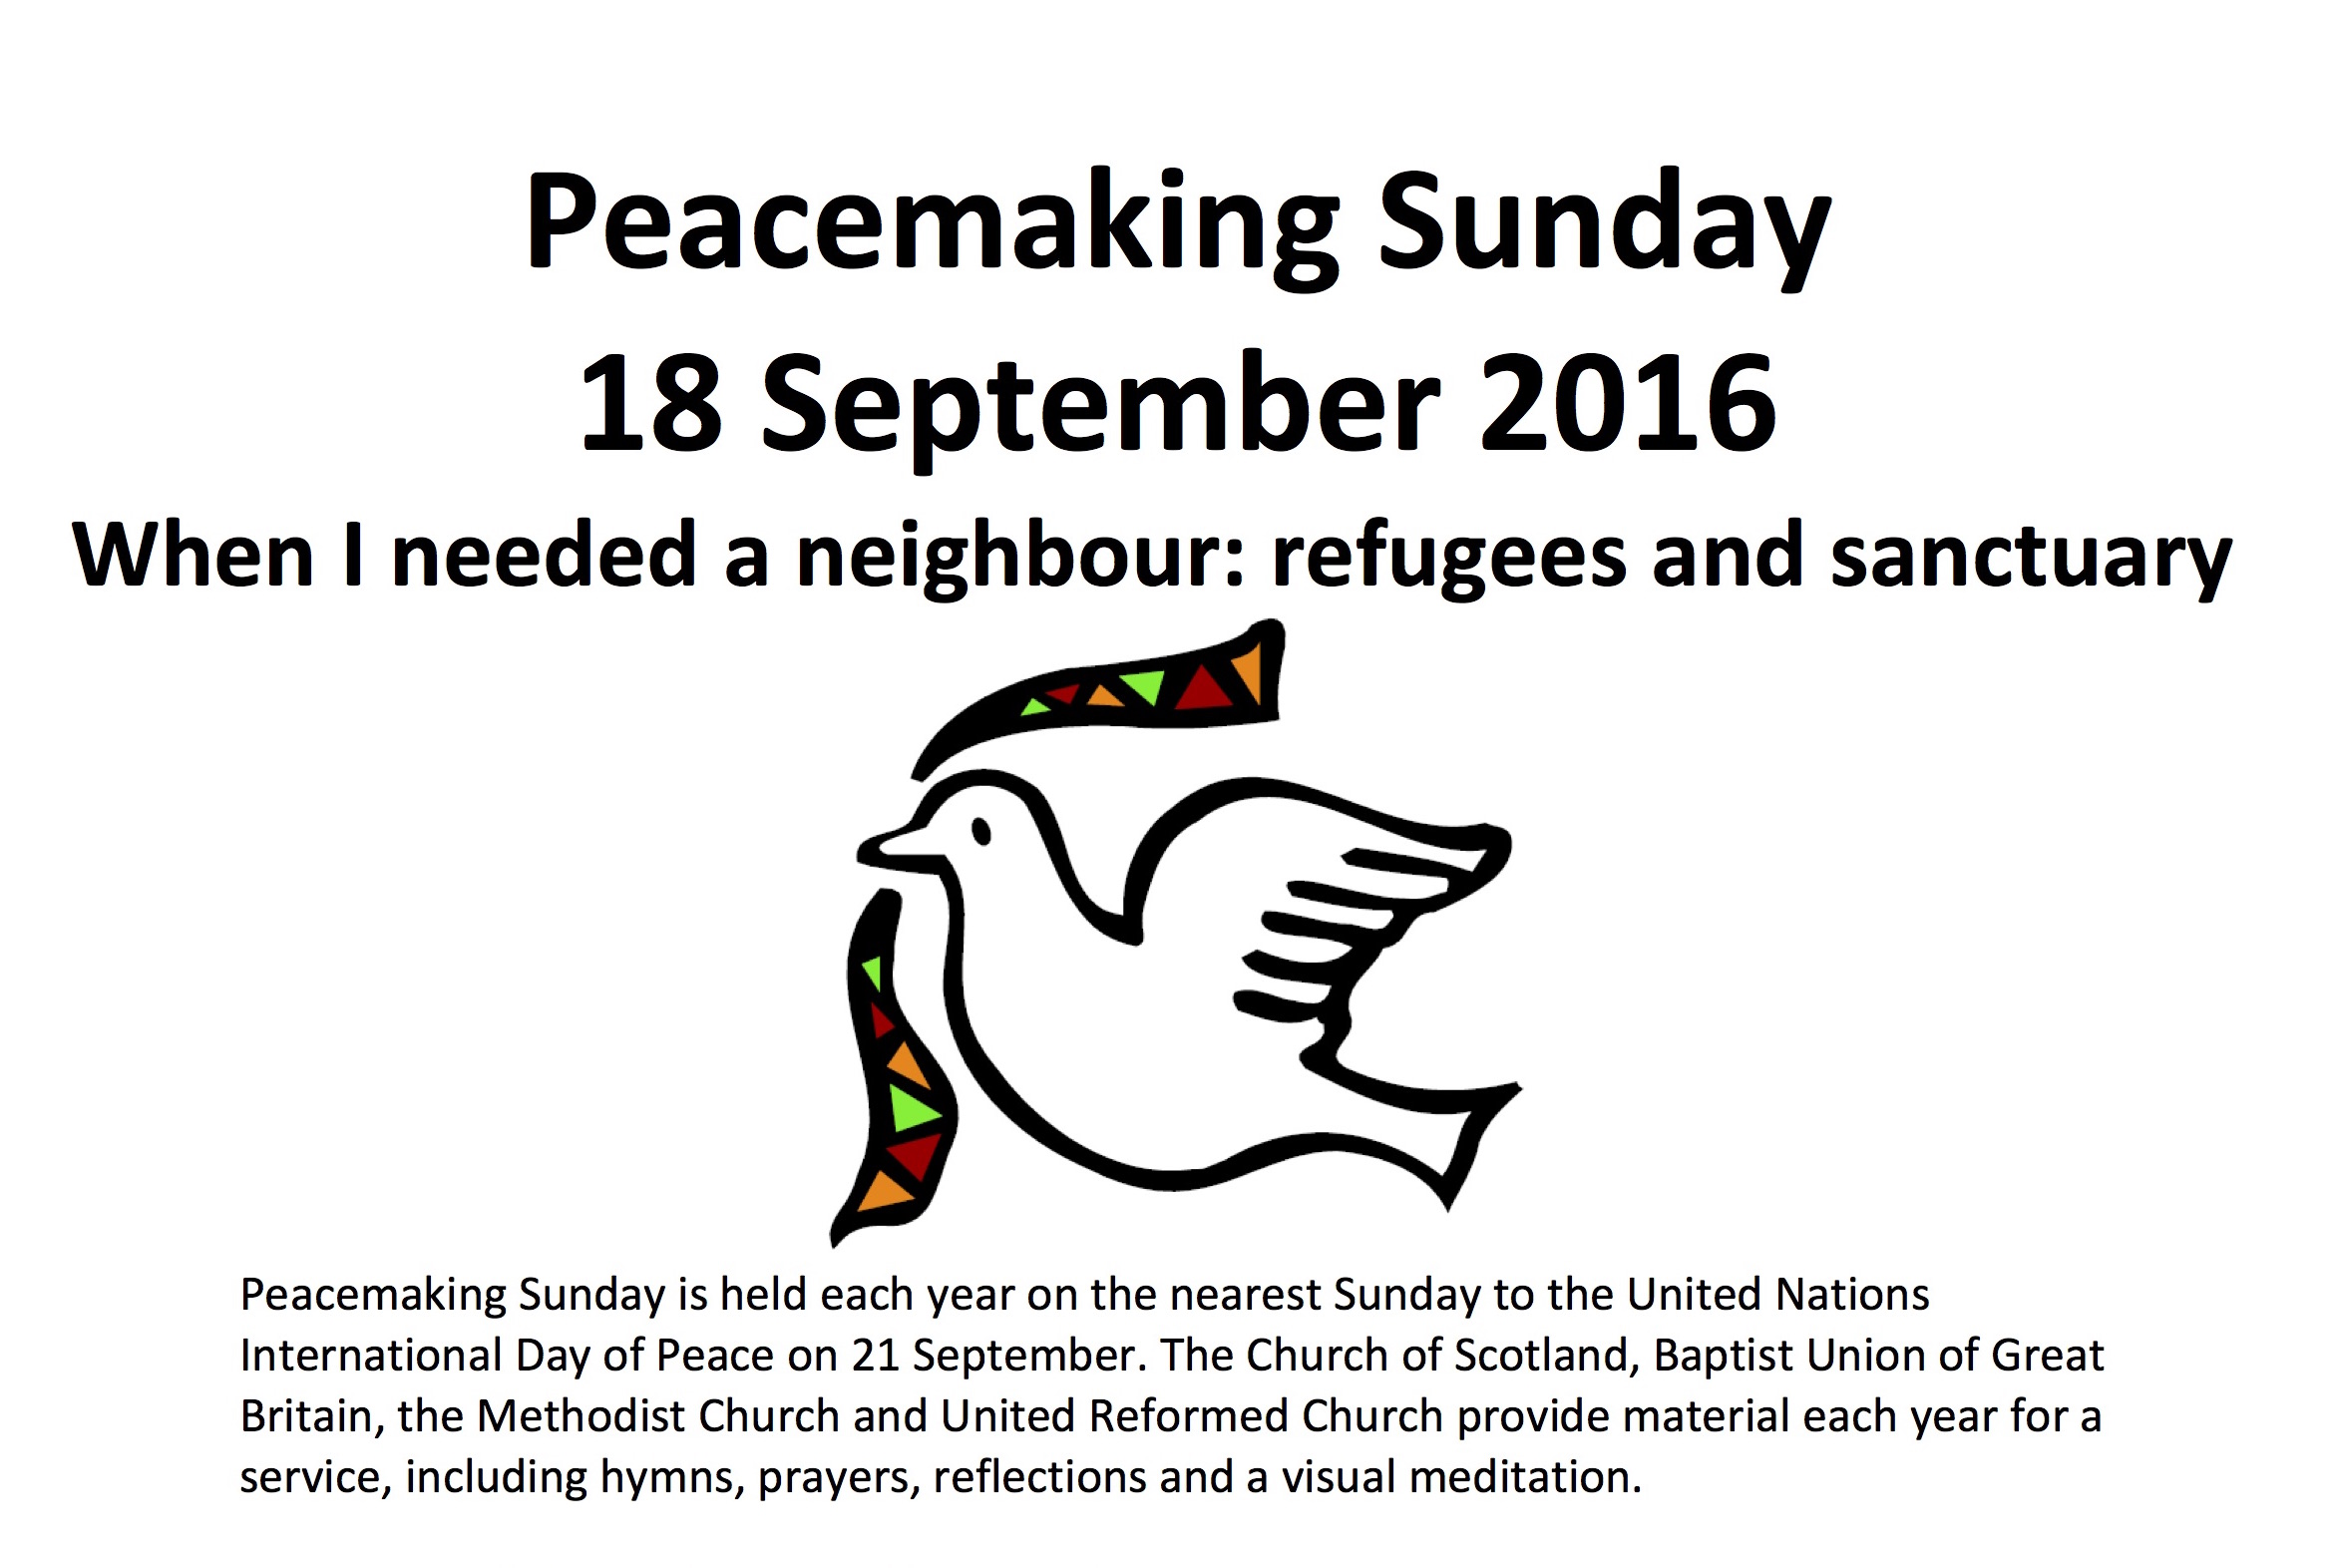 Peacemaking Sunday (18 September 2016)